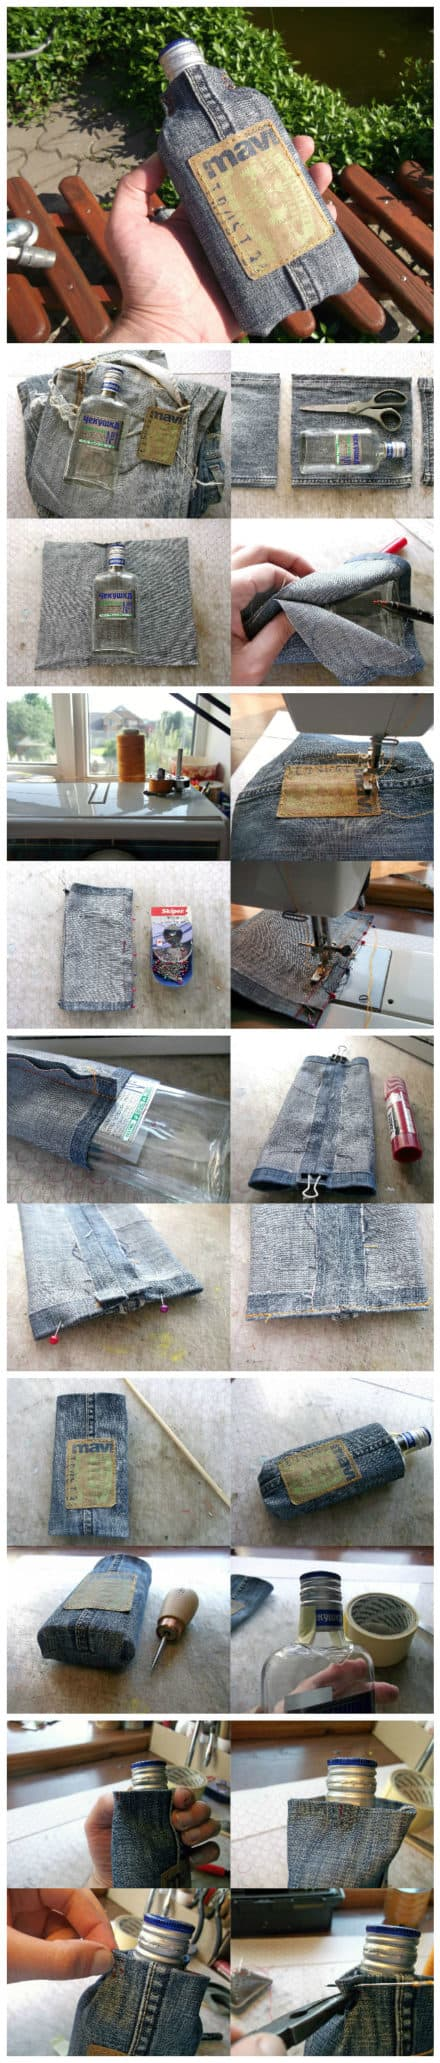 How To Make Flask From Your Favourite But Old Jeans And A Glass Bottle